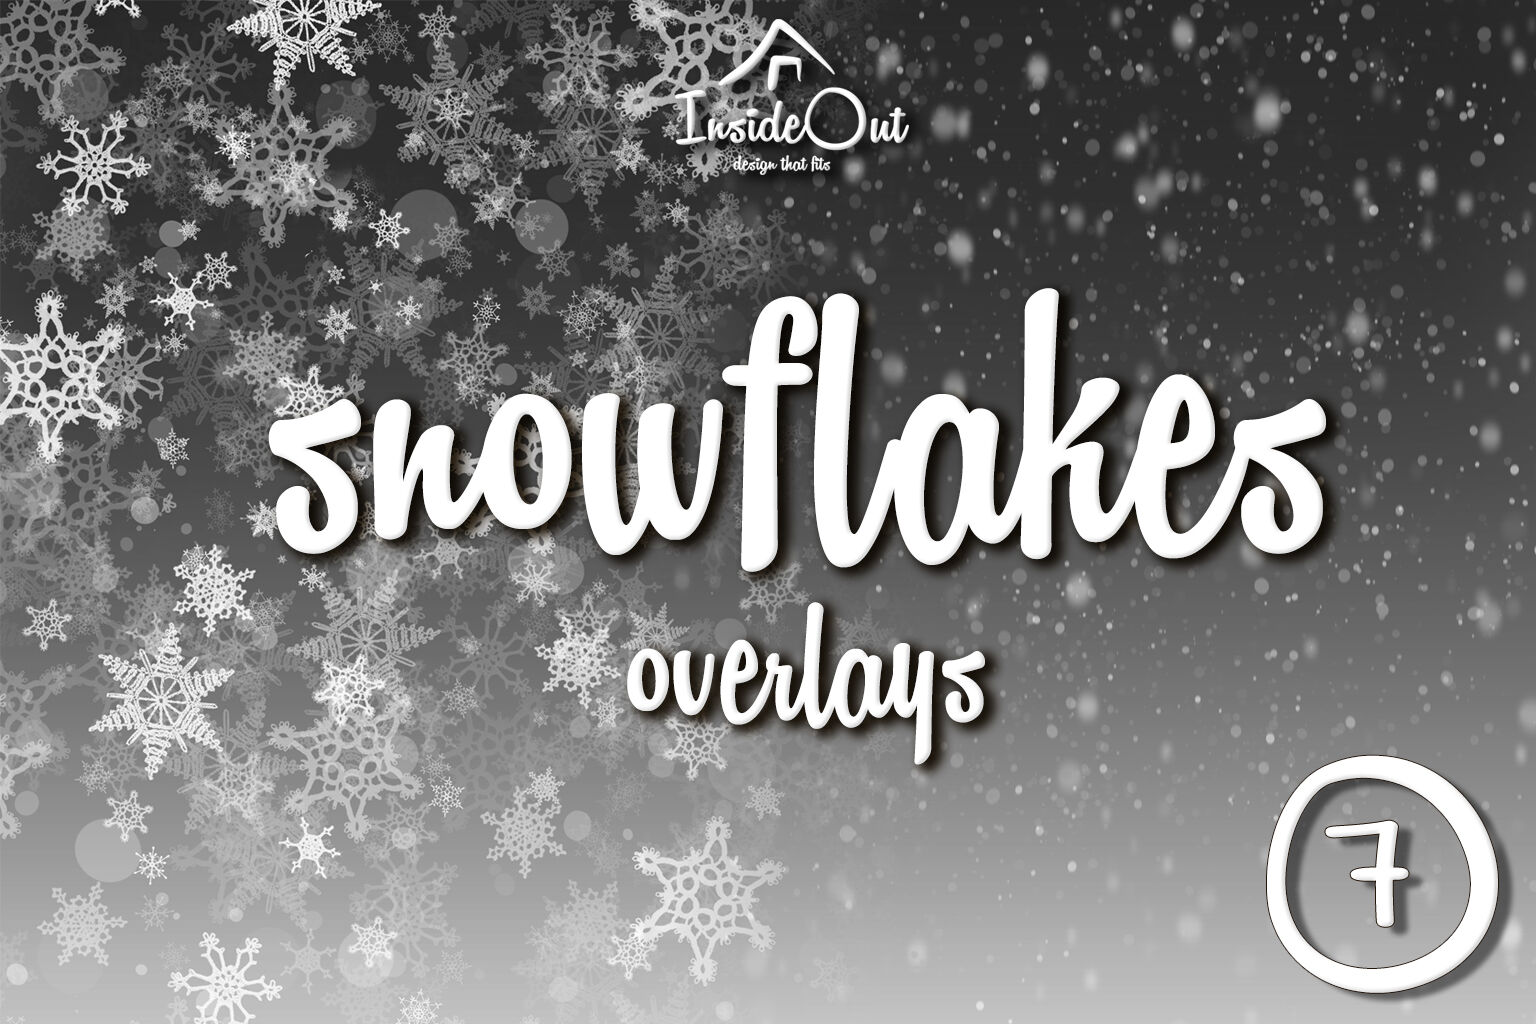 Snow clipart for photoshop vector transparent stock Falling Snow Overlay Snowflake Clipart. Photoshop Christmas ... vector transparent stock